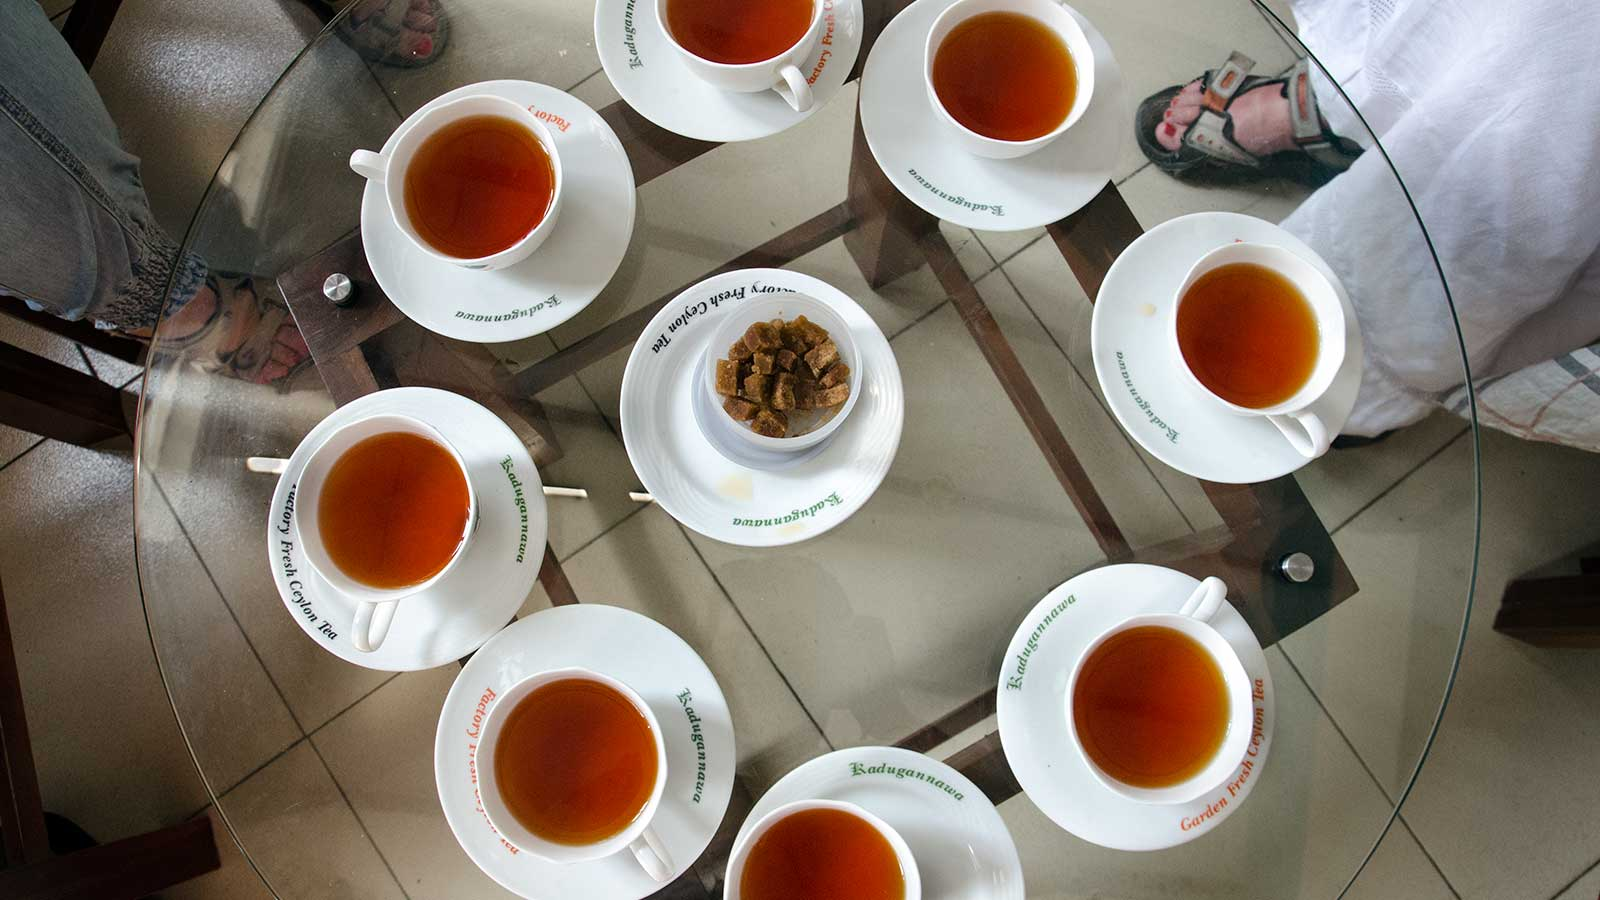 Ceylon tea revealed